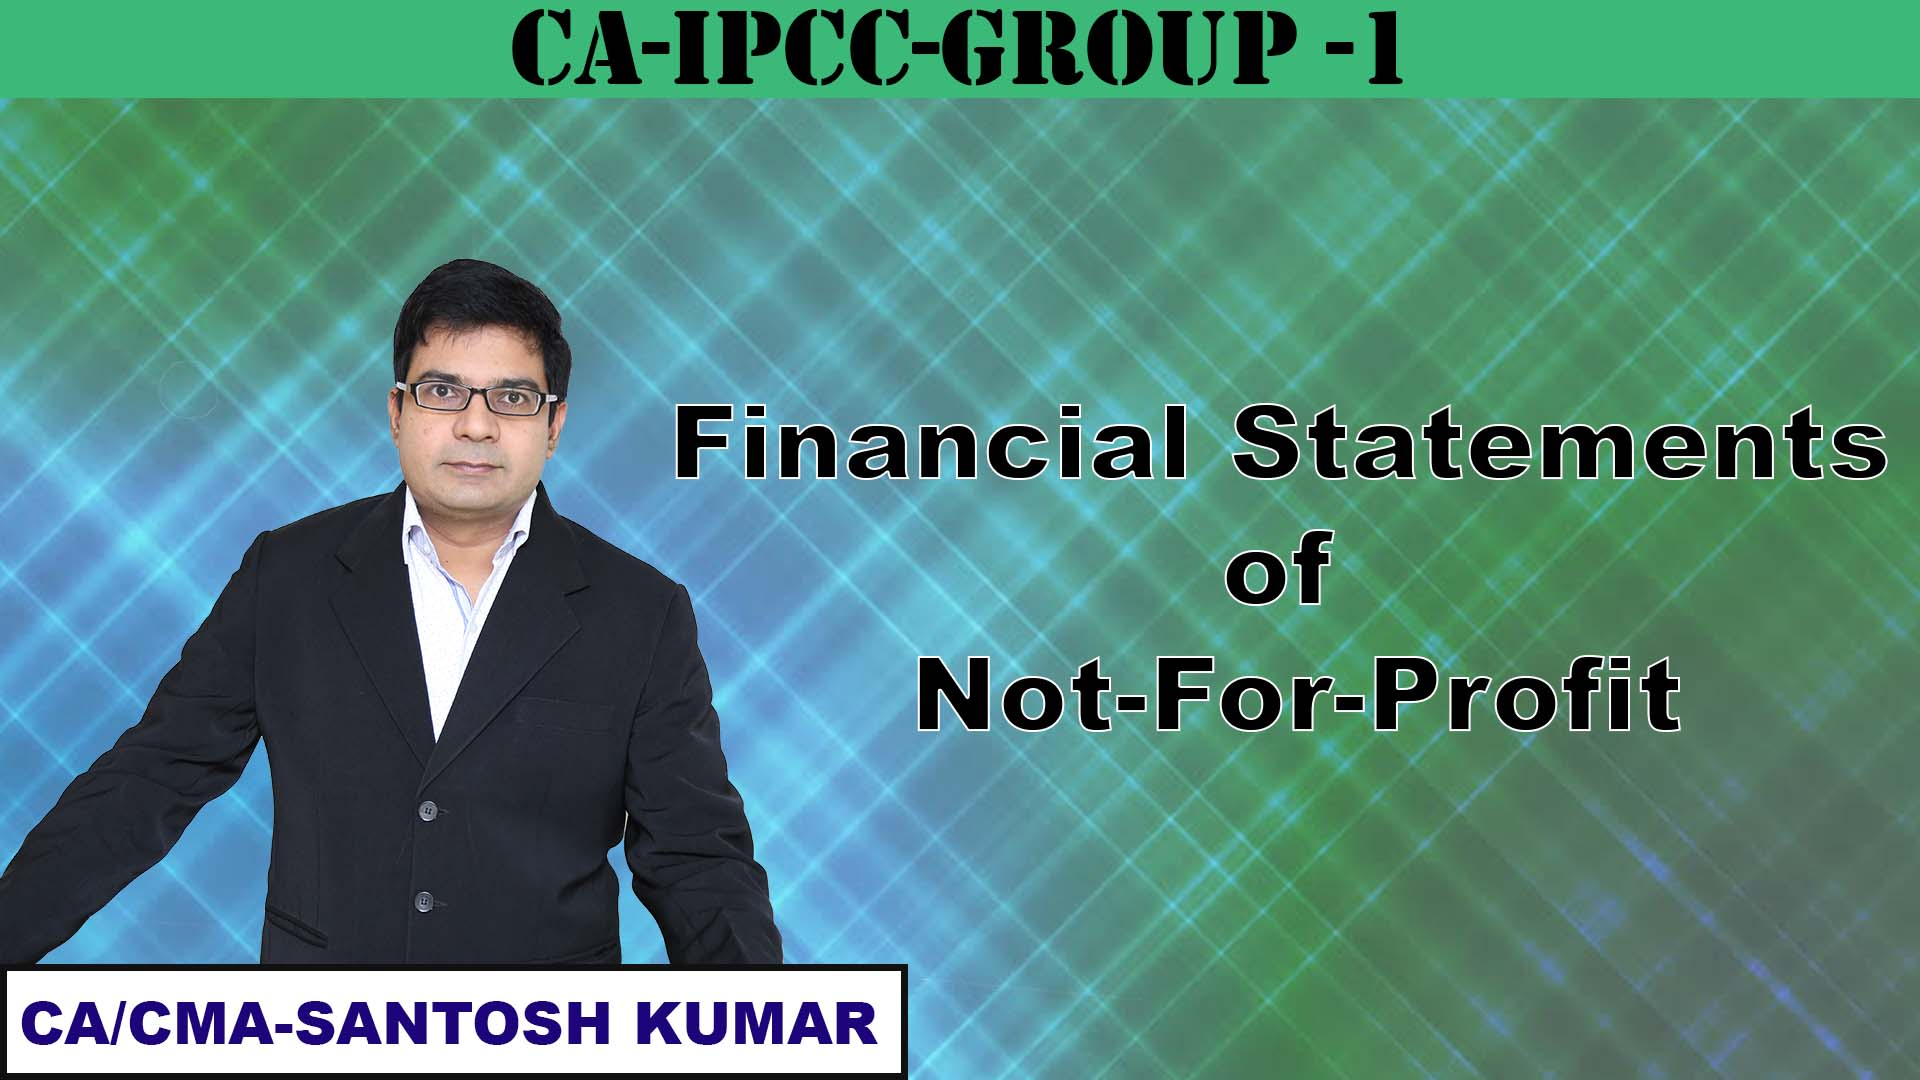 Financial Statements of Not-For-Profit